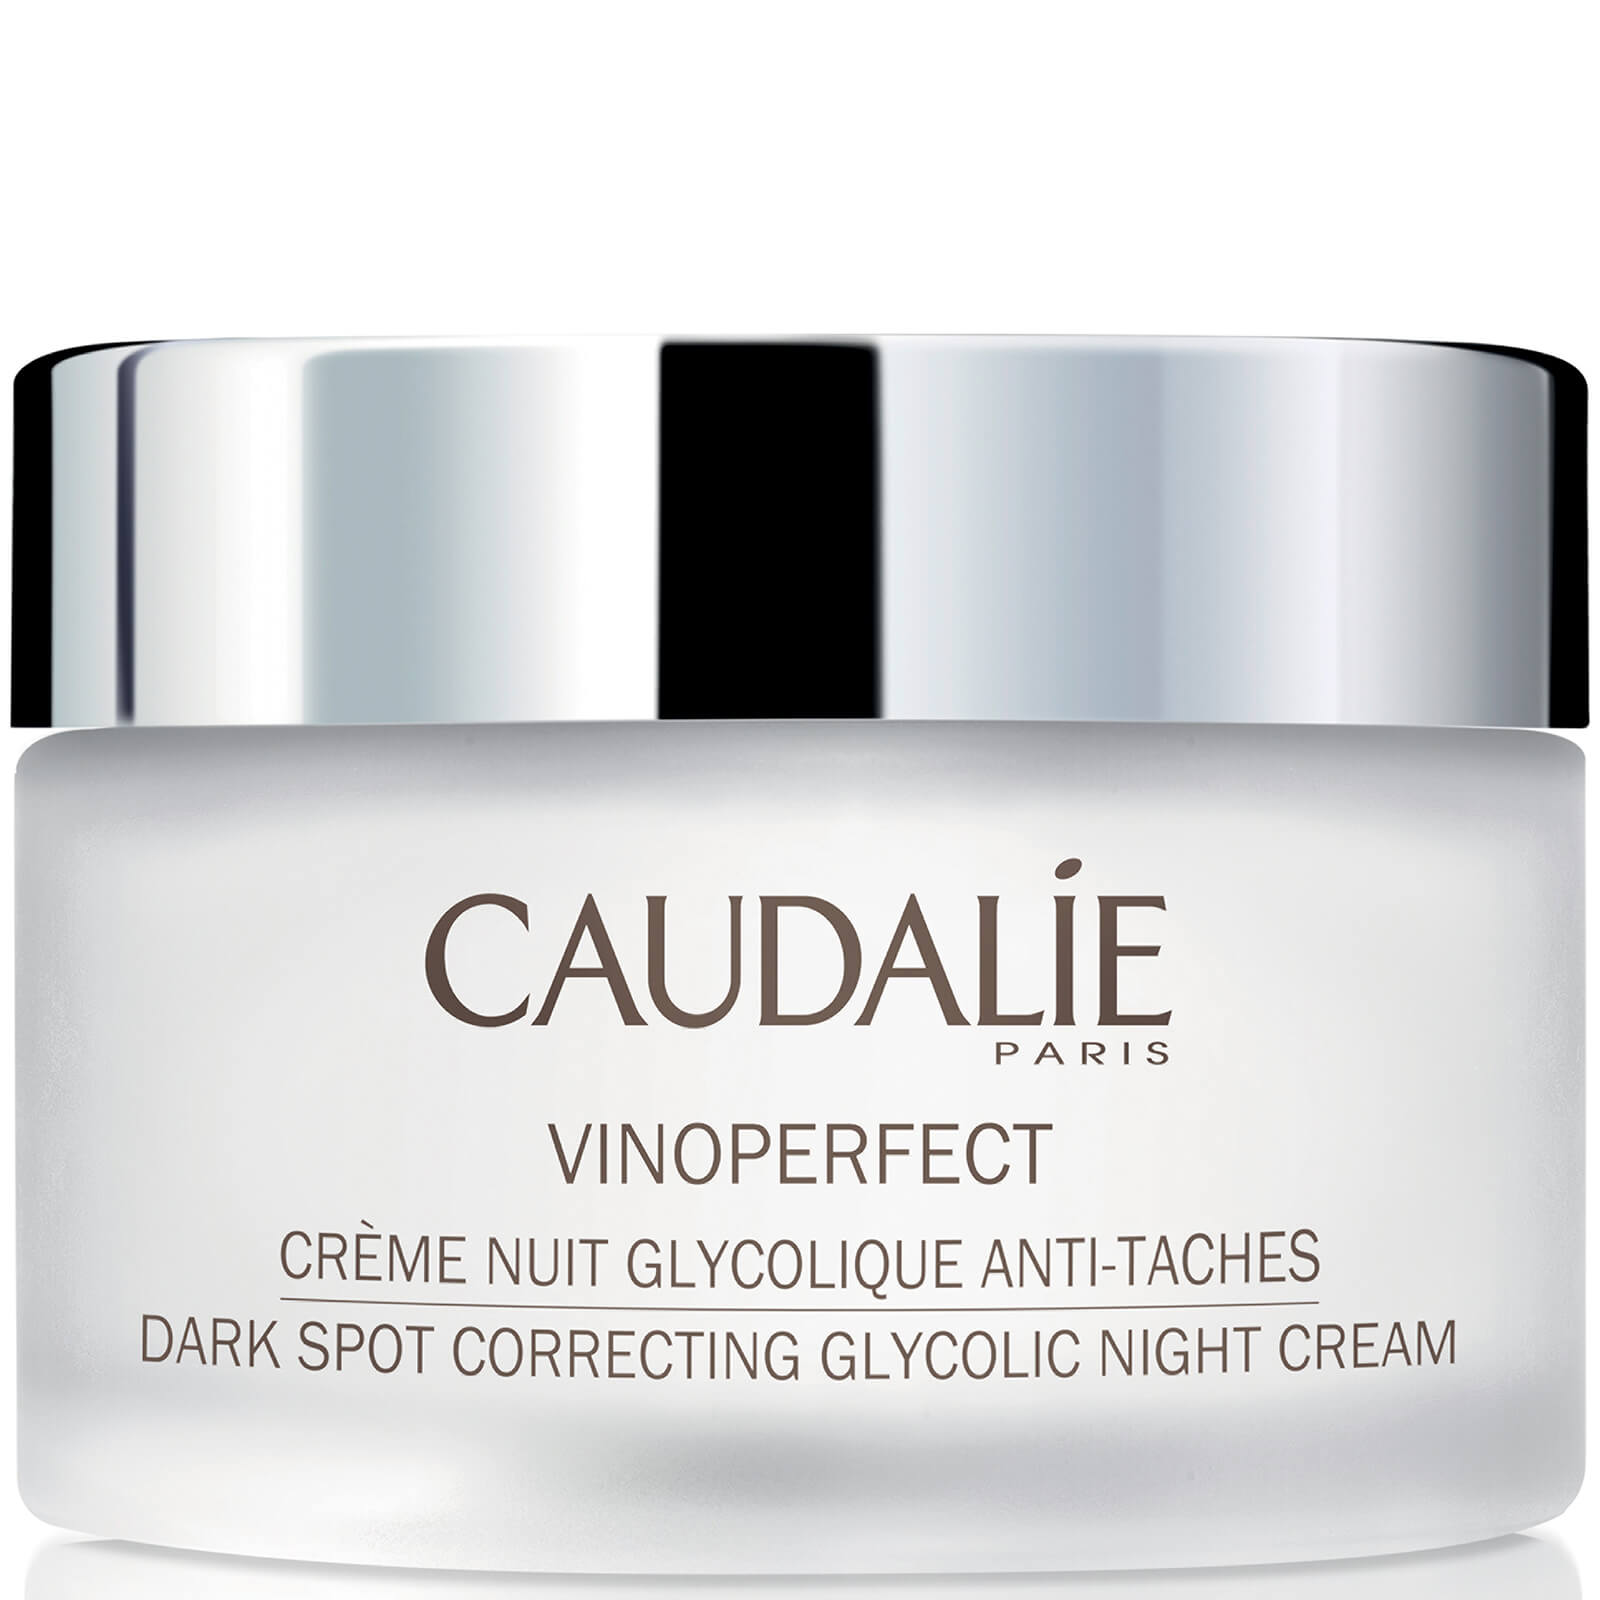 Caudalie Vinoperfect Dark Spot Correcting Glycolic Night Cream 50ml